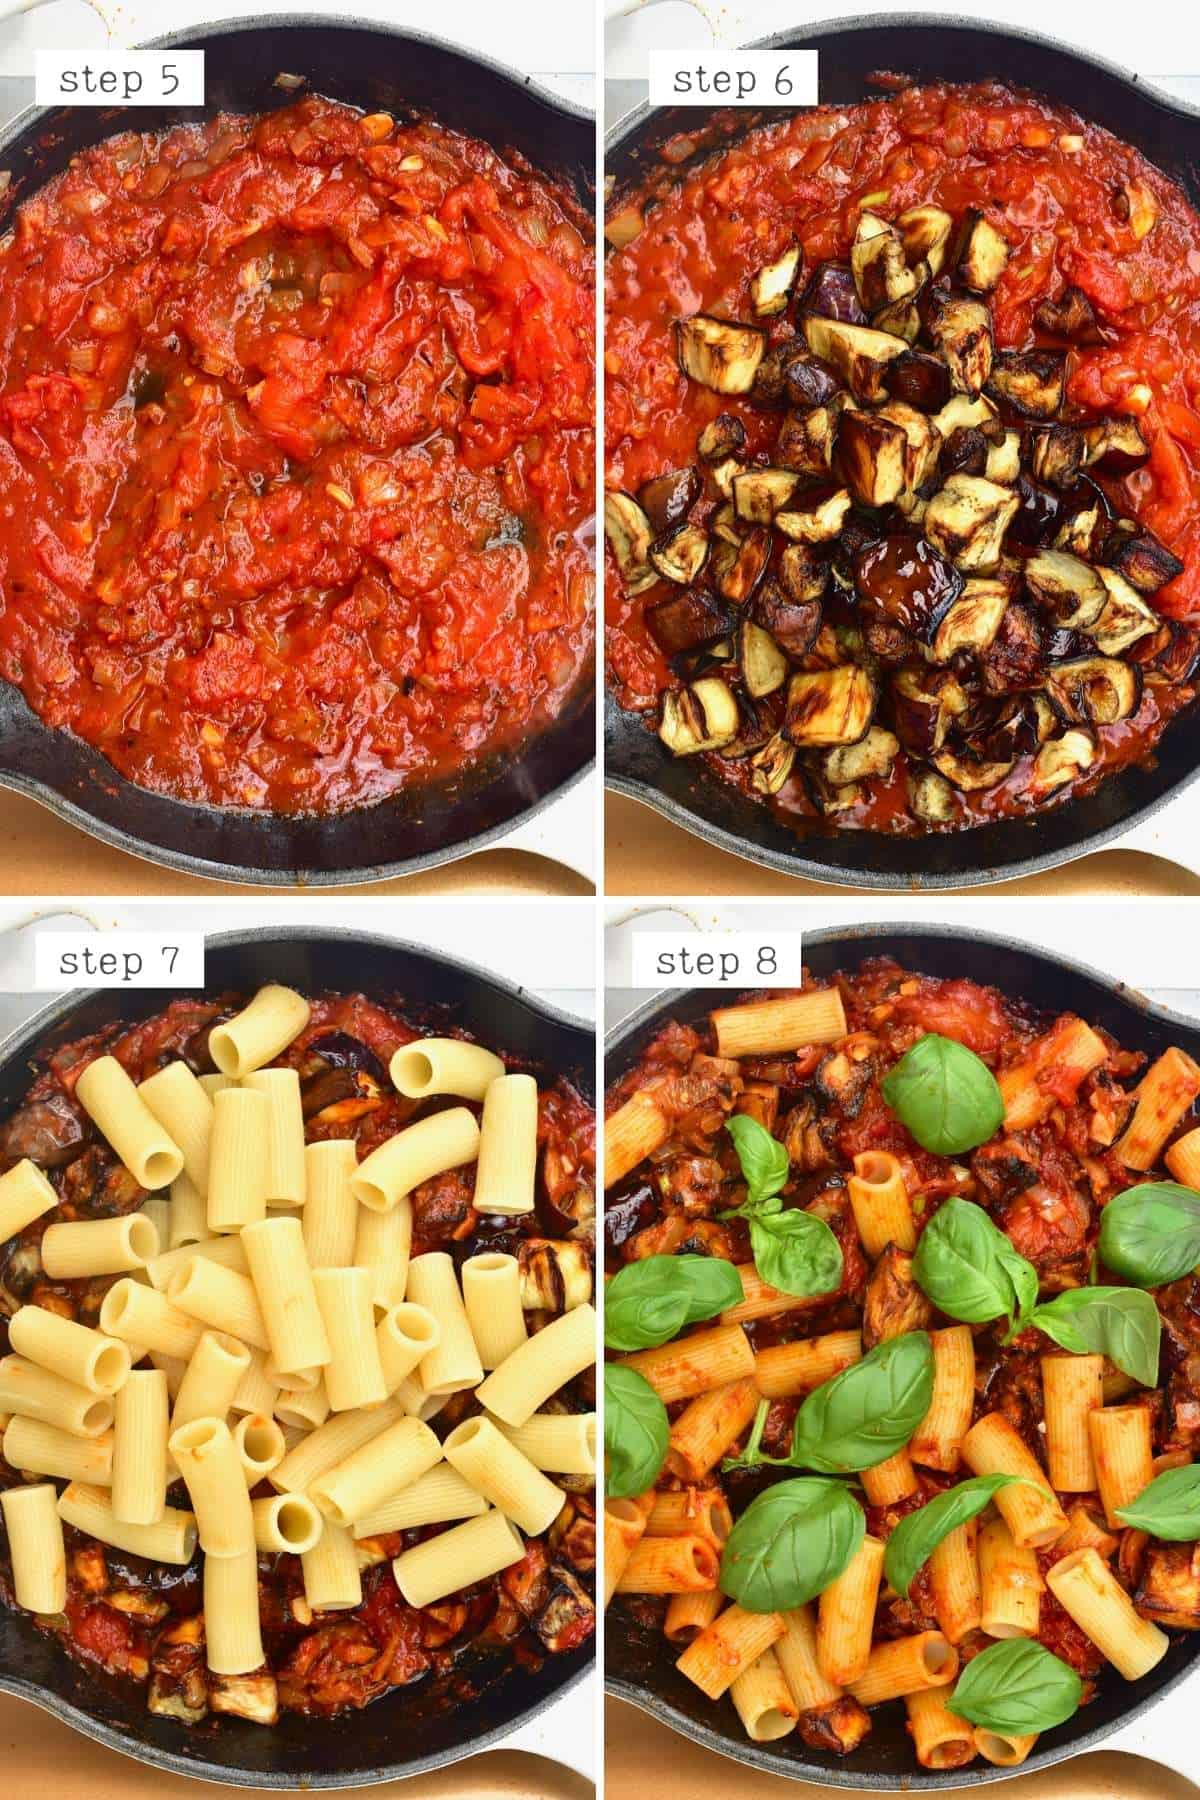 Steps for cooking pasta alla norma